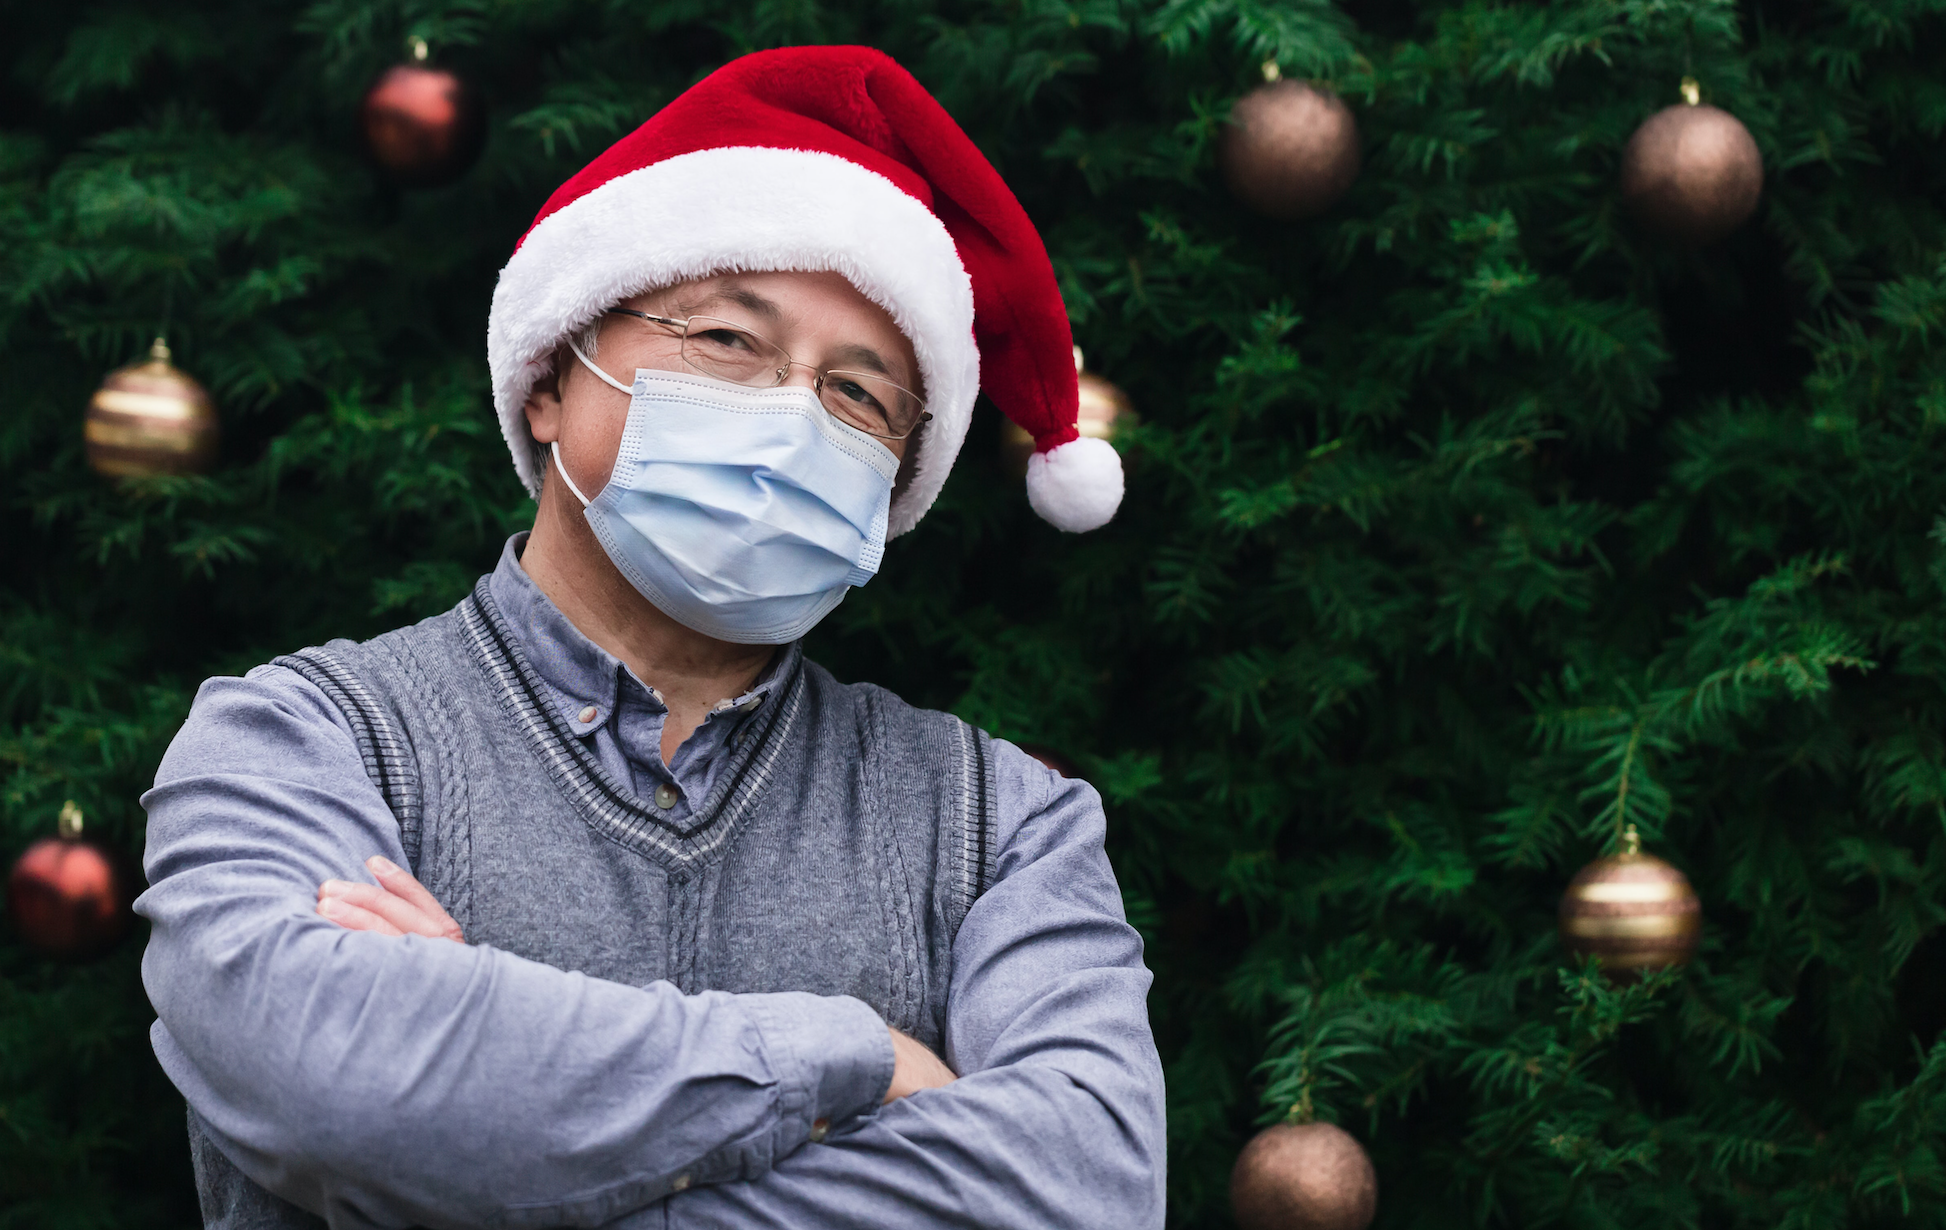 5 Tips to Reduce Holiday Stress During COVID